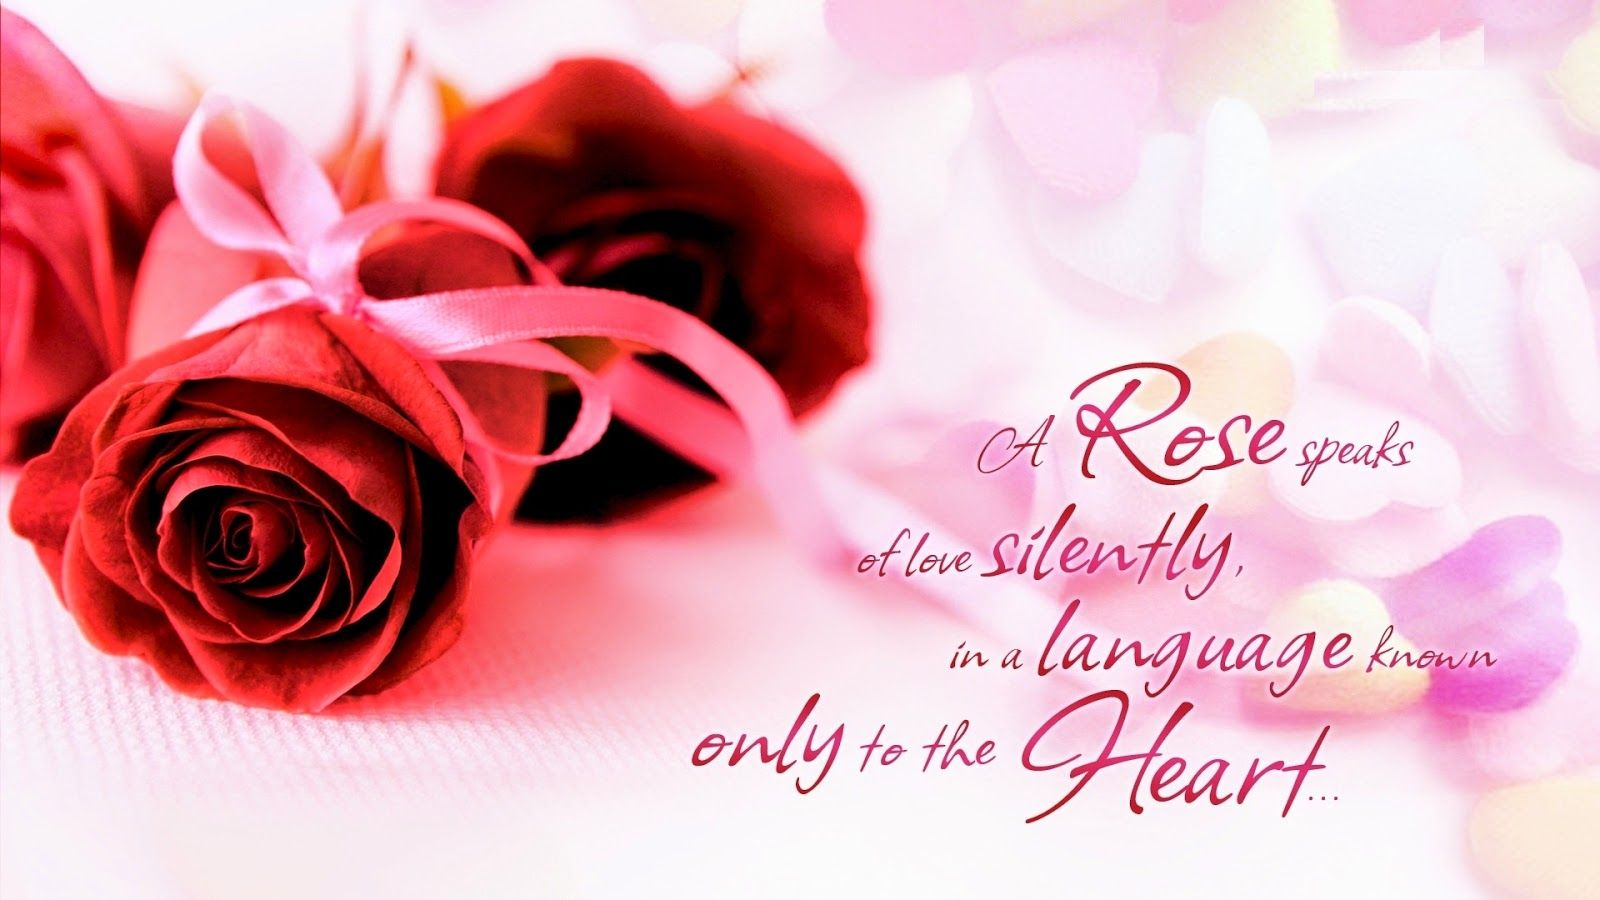 Charmant Best Hd Images Of Love Messages   Beautiful Love Quotes For Her With Rose  Flower Images